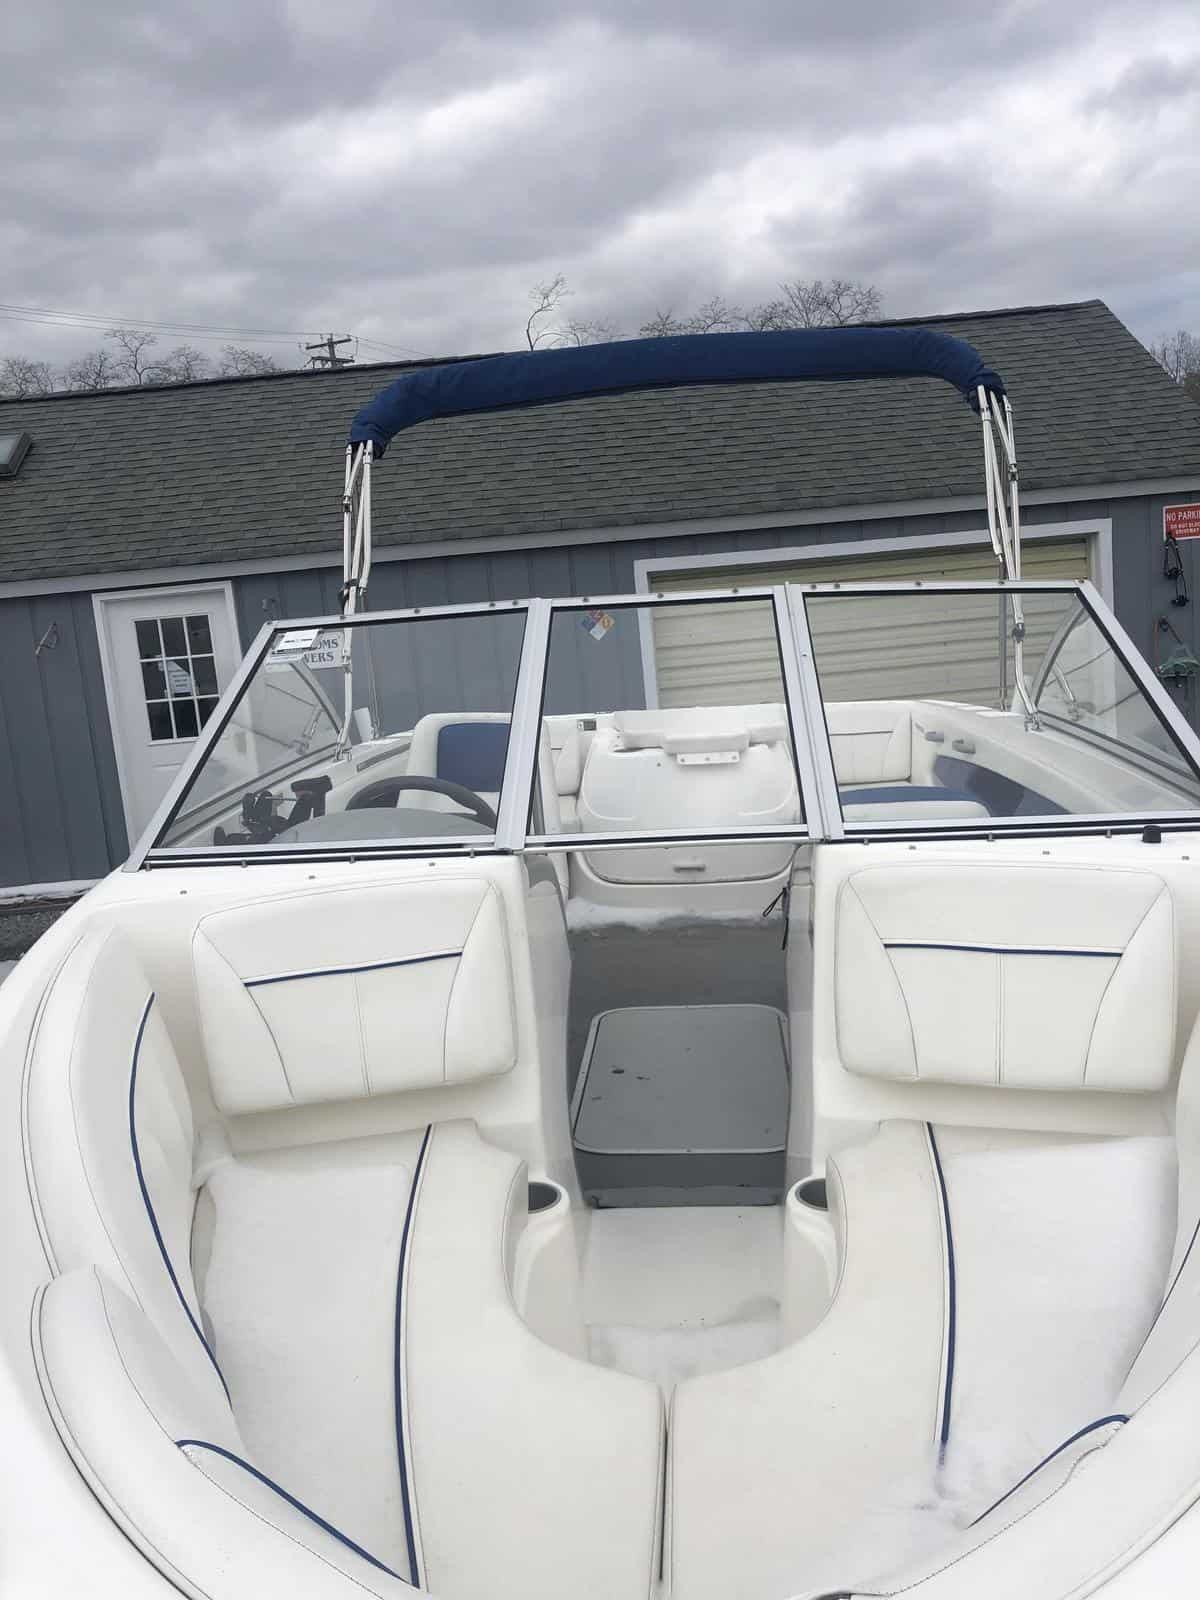 USED 2008 Bayliner Discovery 196 - Great Bay Marine